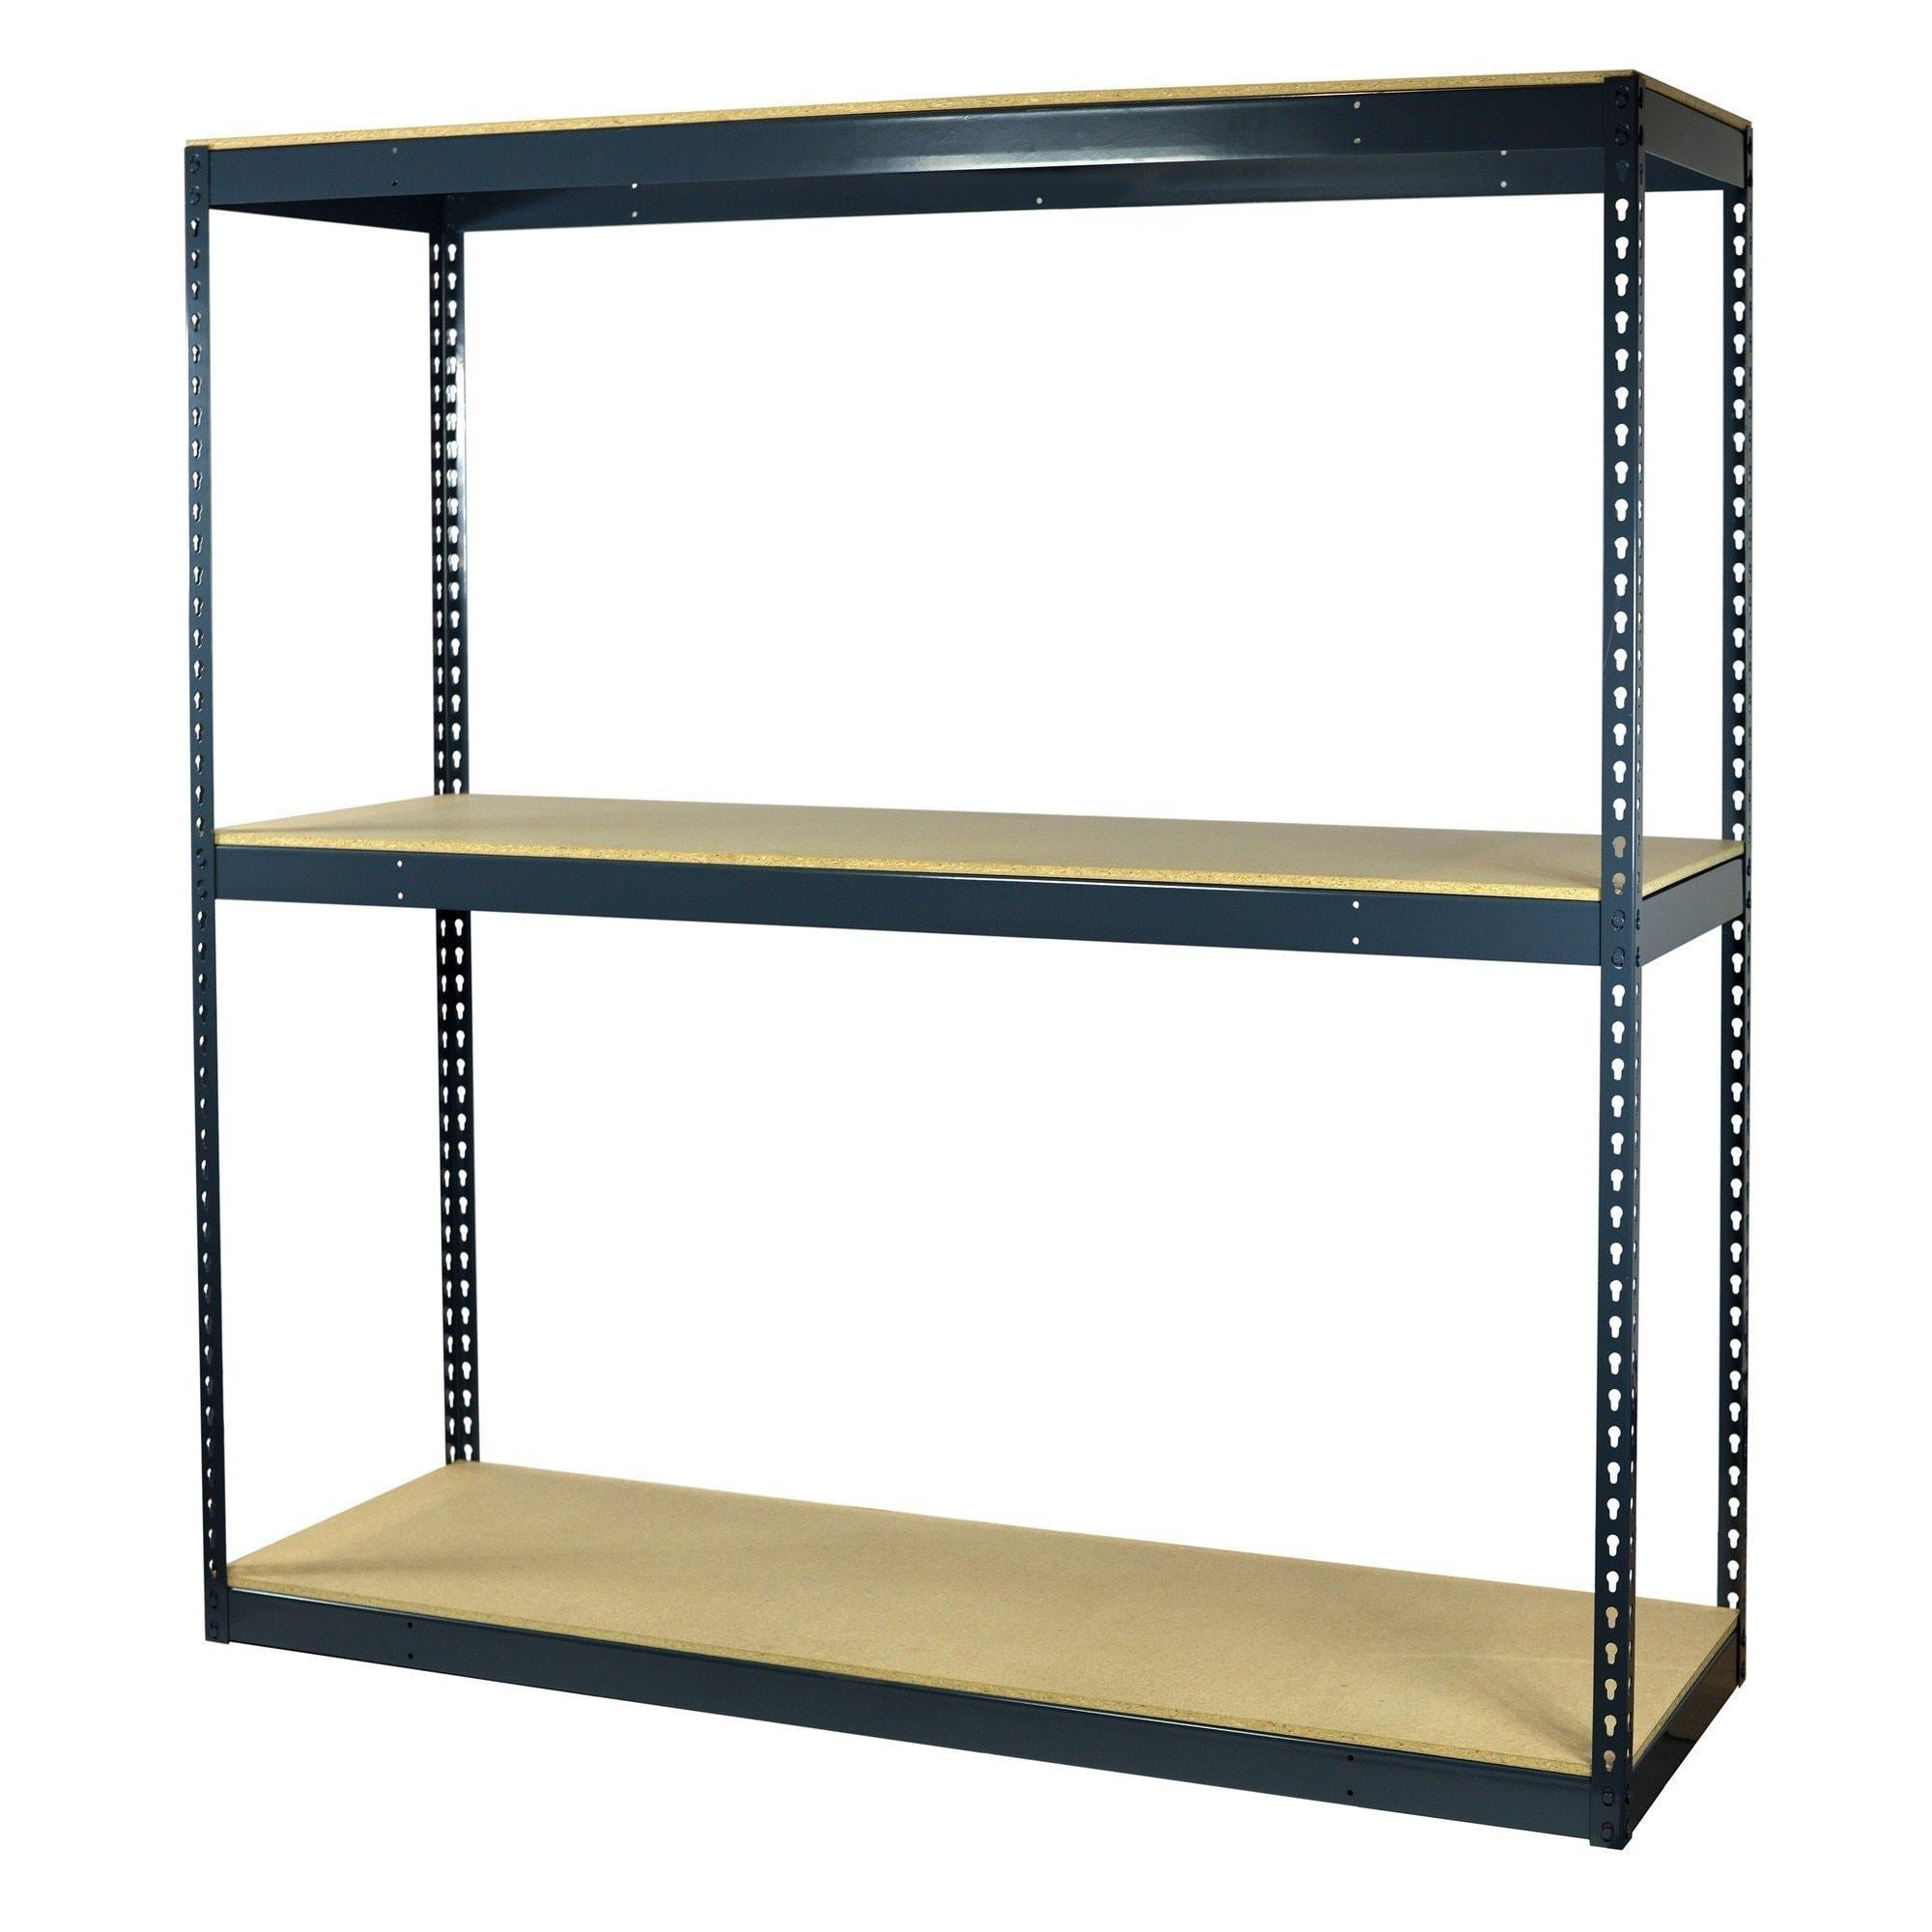 Buy storage pro garage shelving boltless 3 shelves particle board decking heavy duty 1950 lbs capacity 60 w x 36 l x 72 h